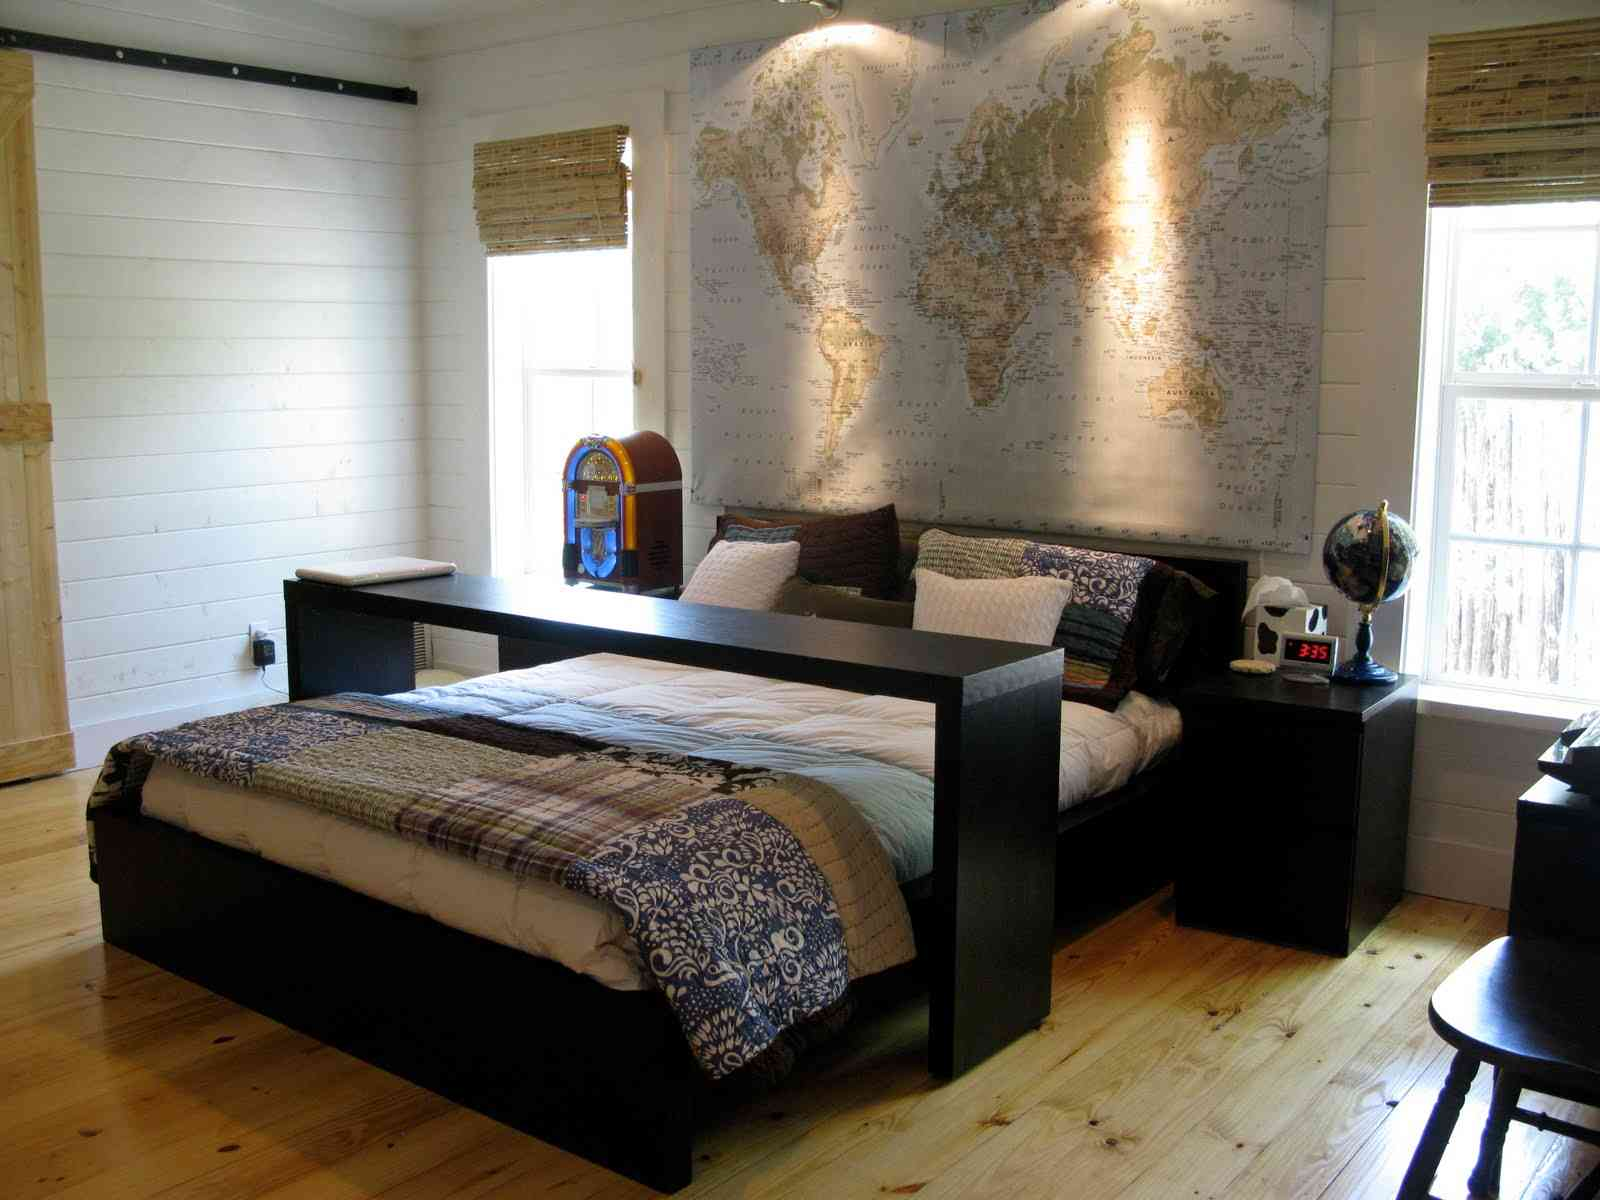 Bedroom furniture from ikea new bedroom 2015 room design inspirations - Bedroom sets at ikea ...